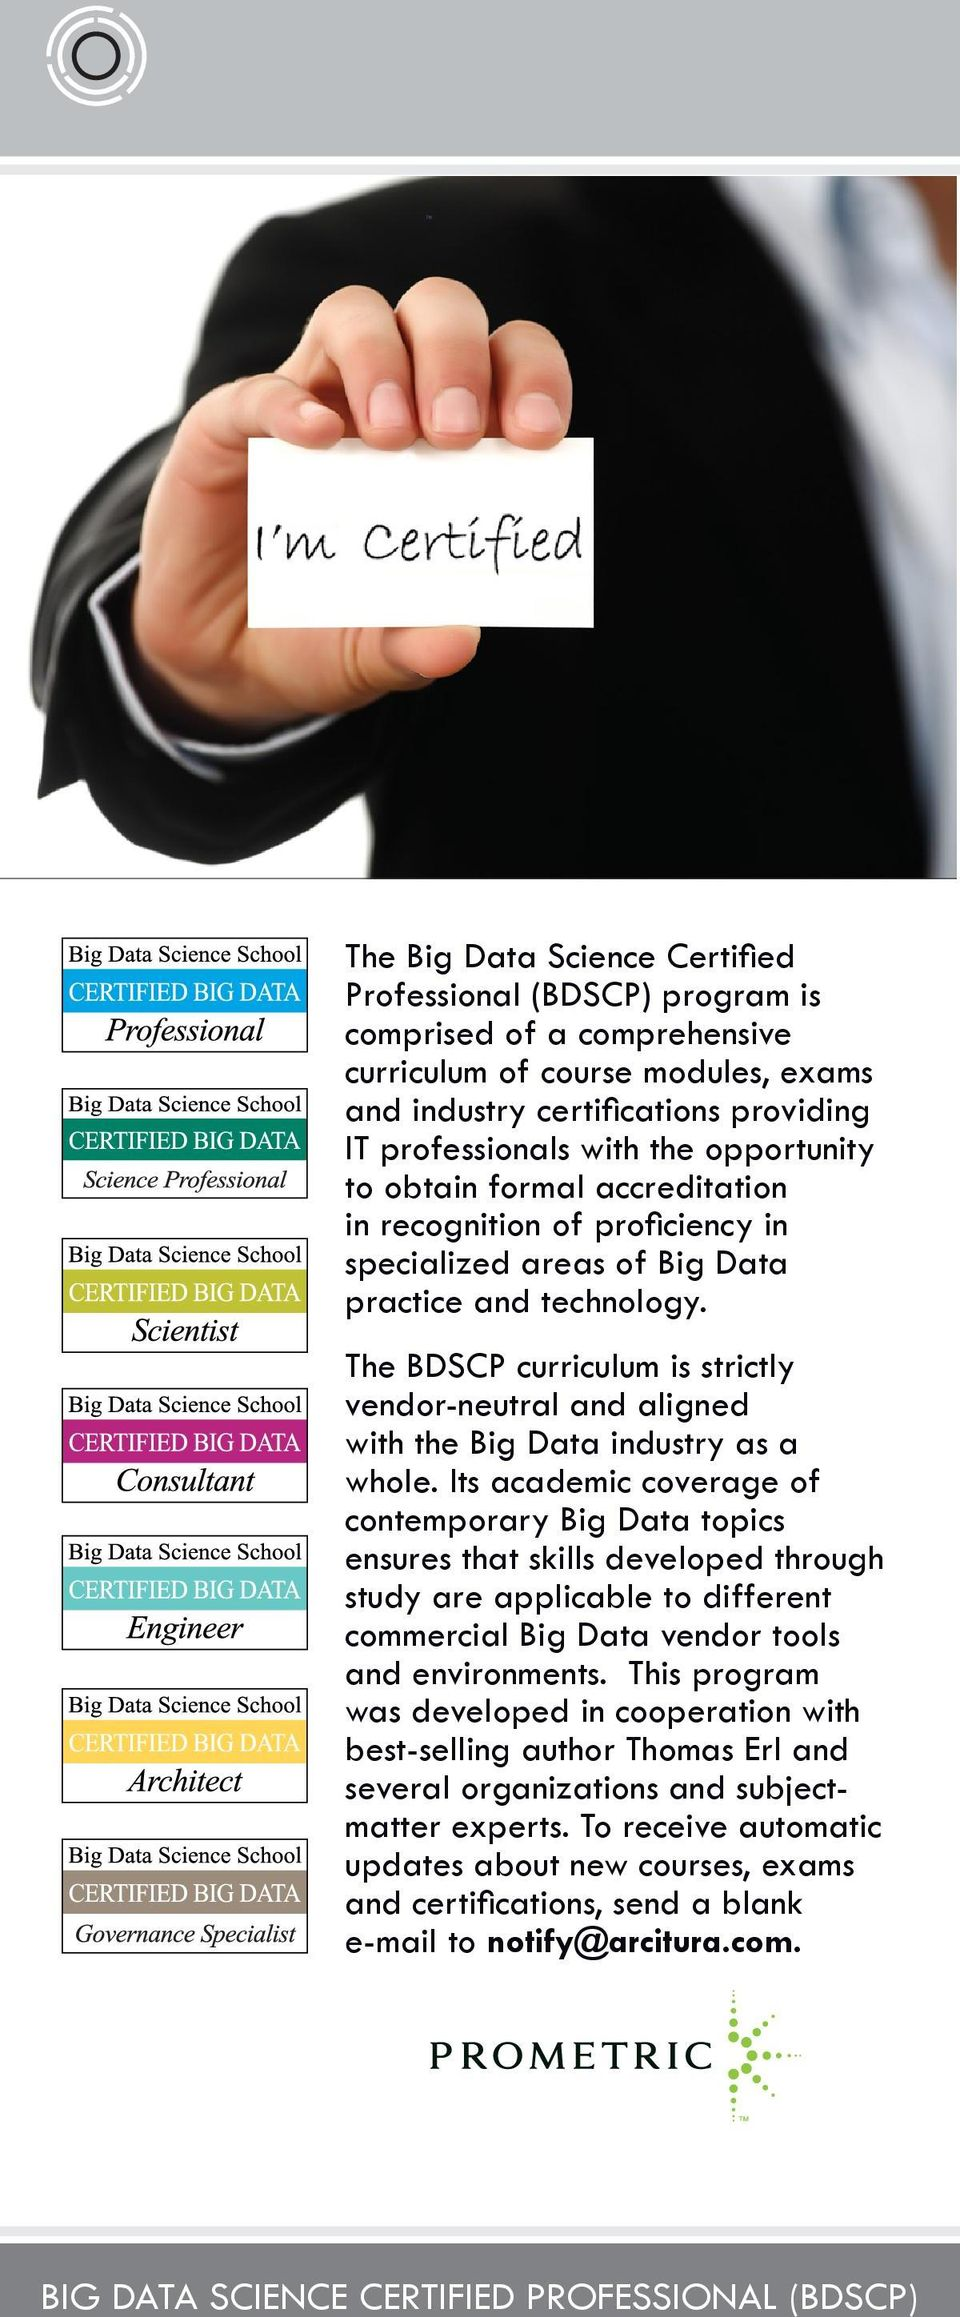 The BDSCP curriculum is strictly vendor-neutral and aligned with the Big Data industry as a whole.